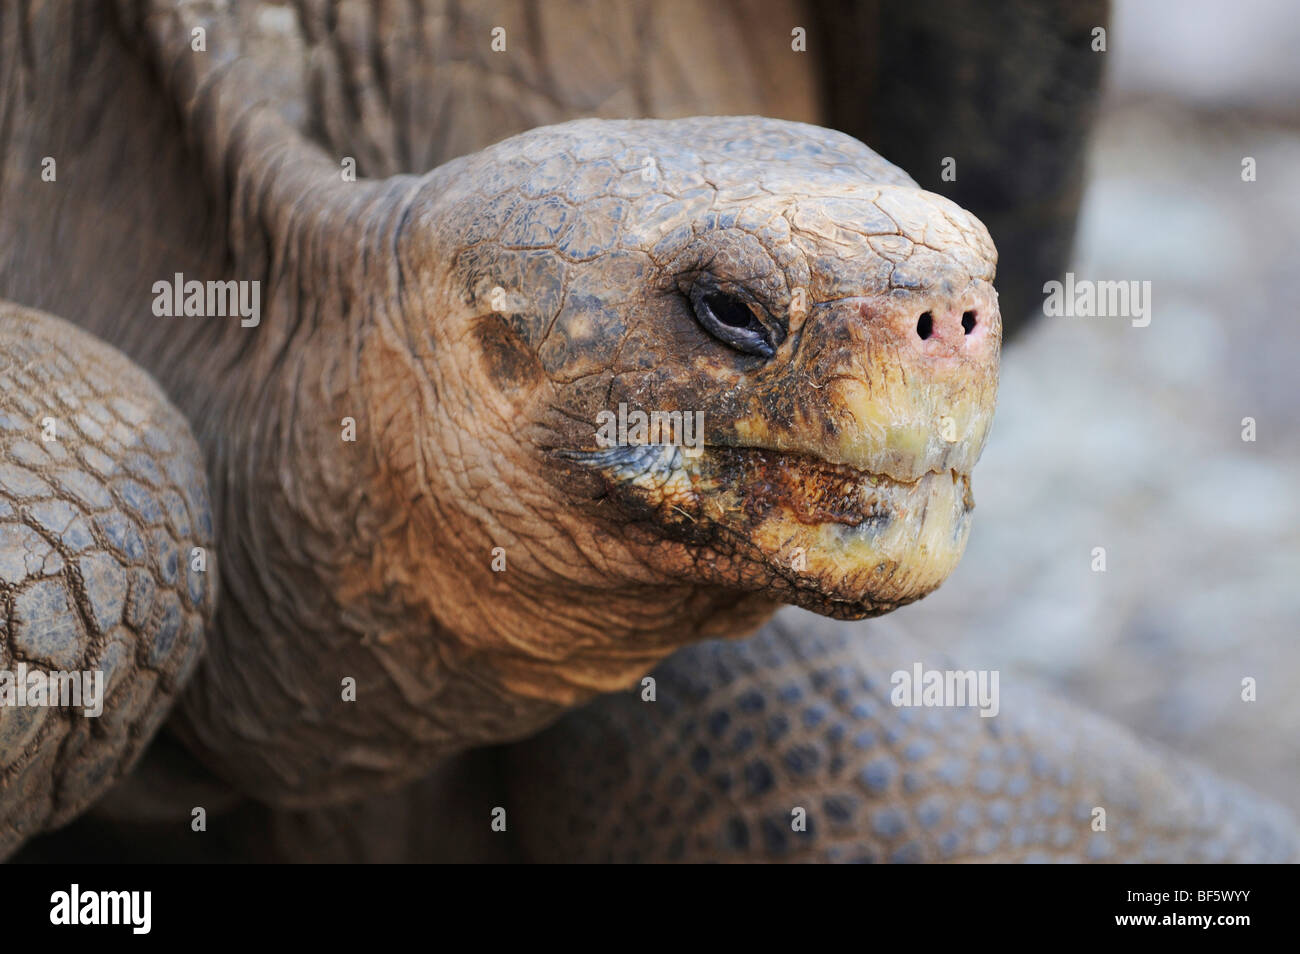 Galapagos Giant Tortoise (Geochelone elephantopus), adult, Galapagos Islands, Ecuador, South America - Stock Image